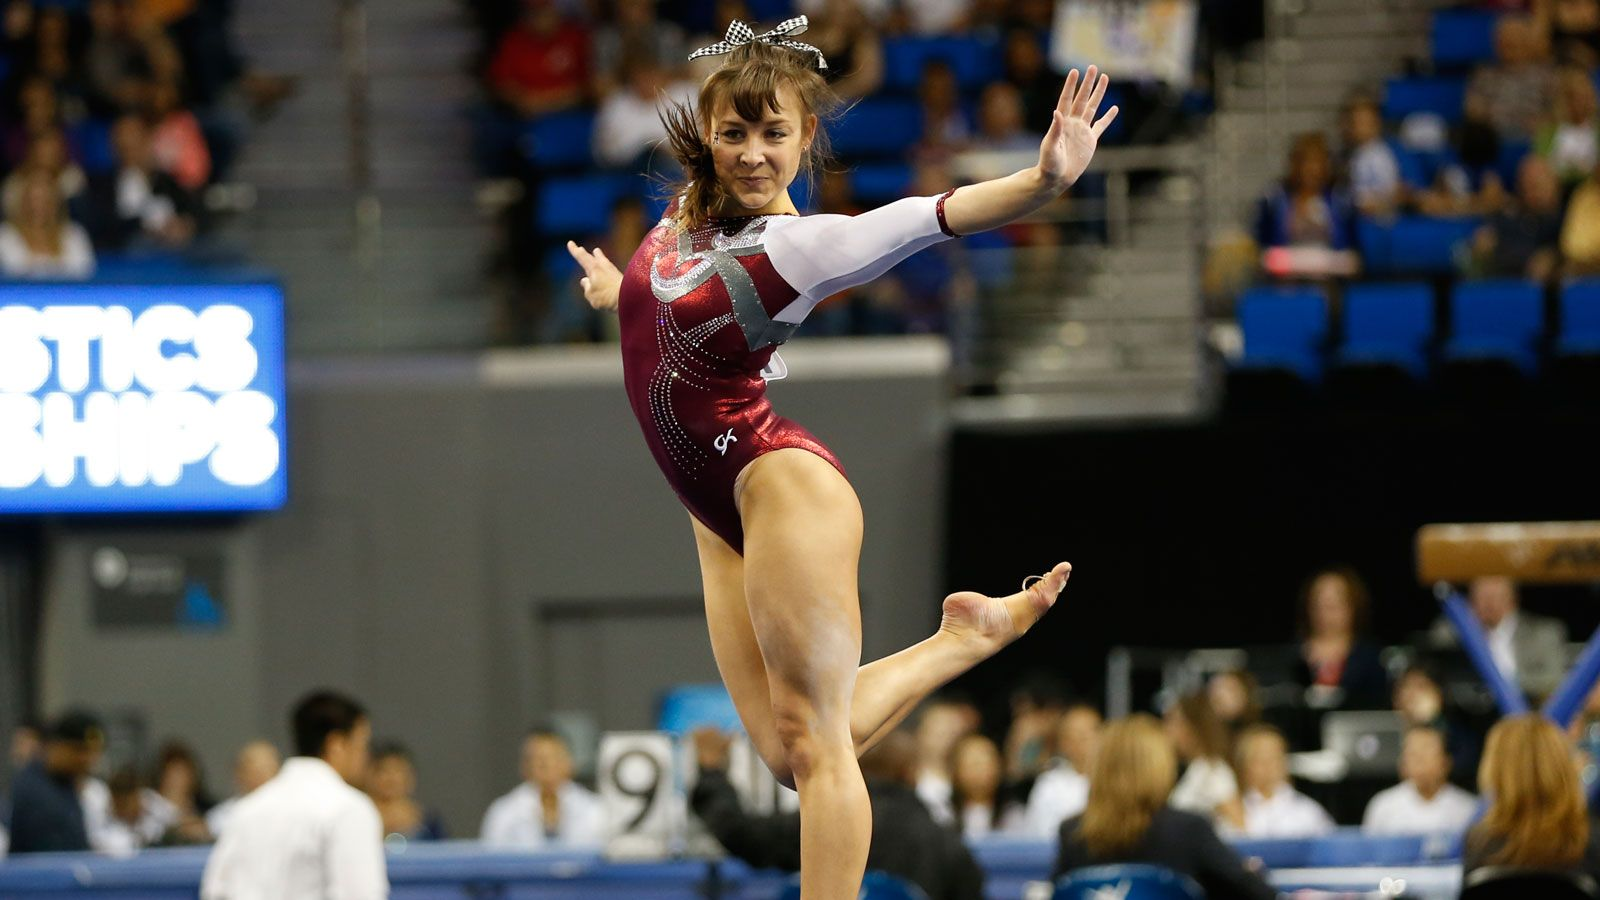 Alabama S Jacob Top 30 Finalist For Woman Of The Year